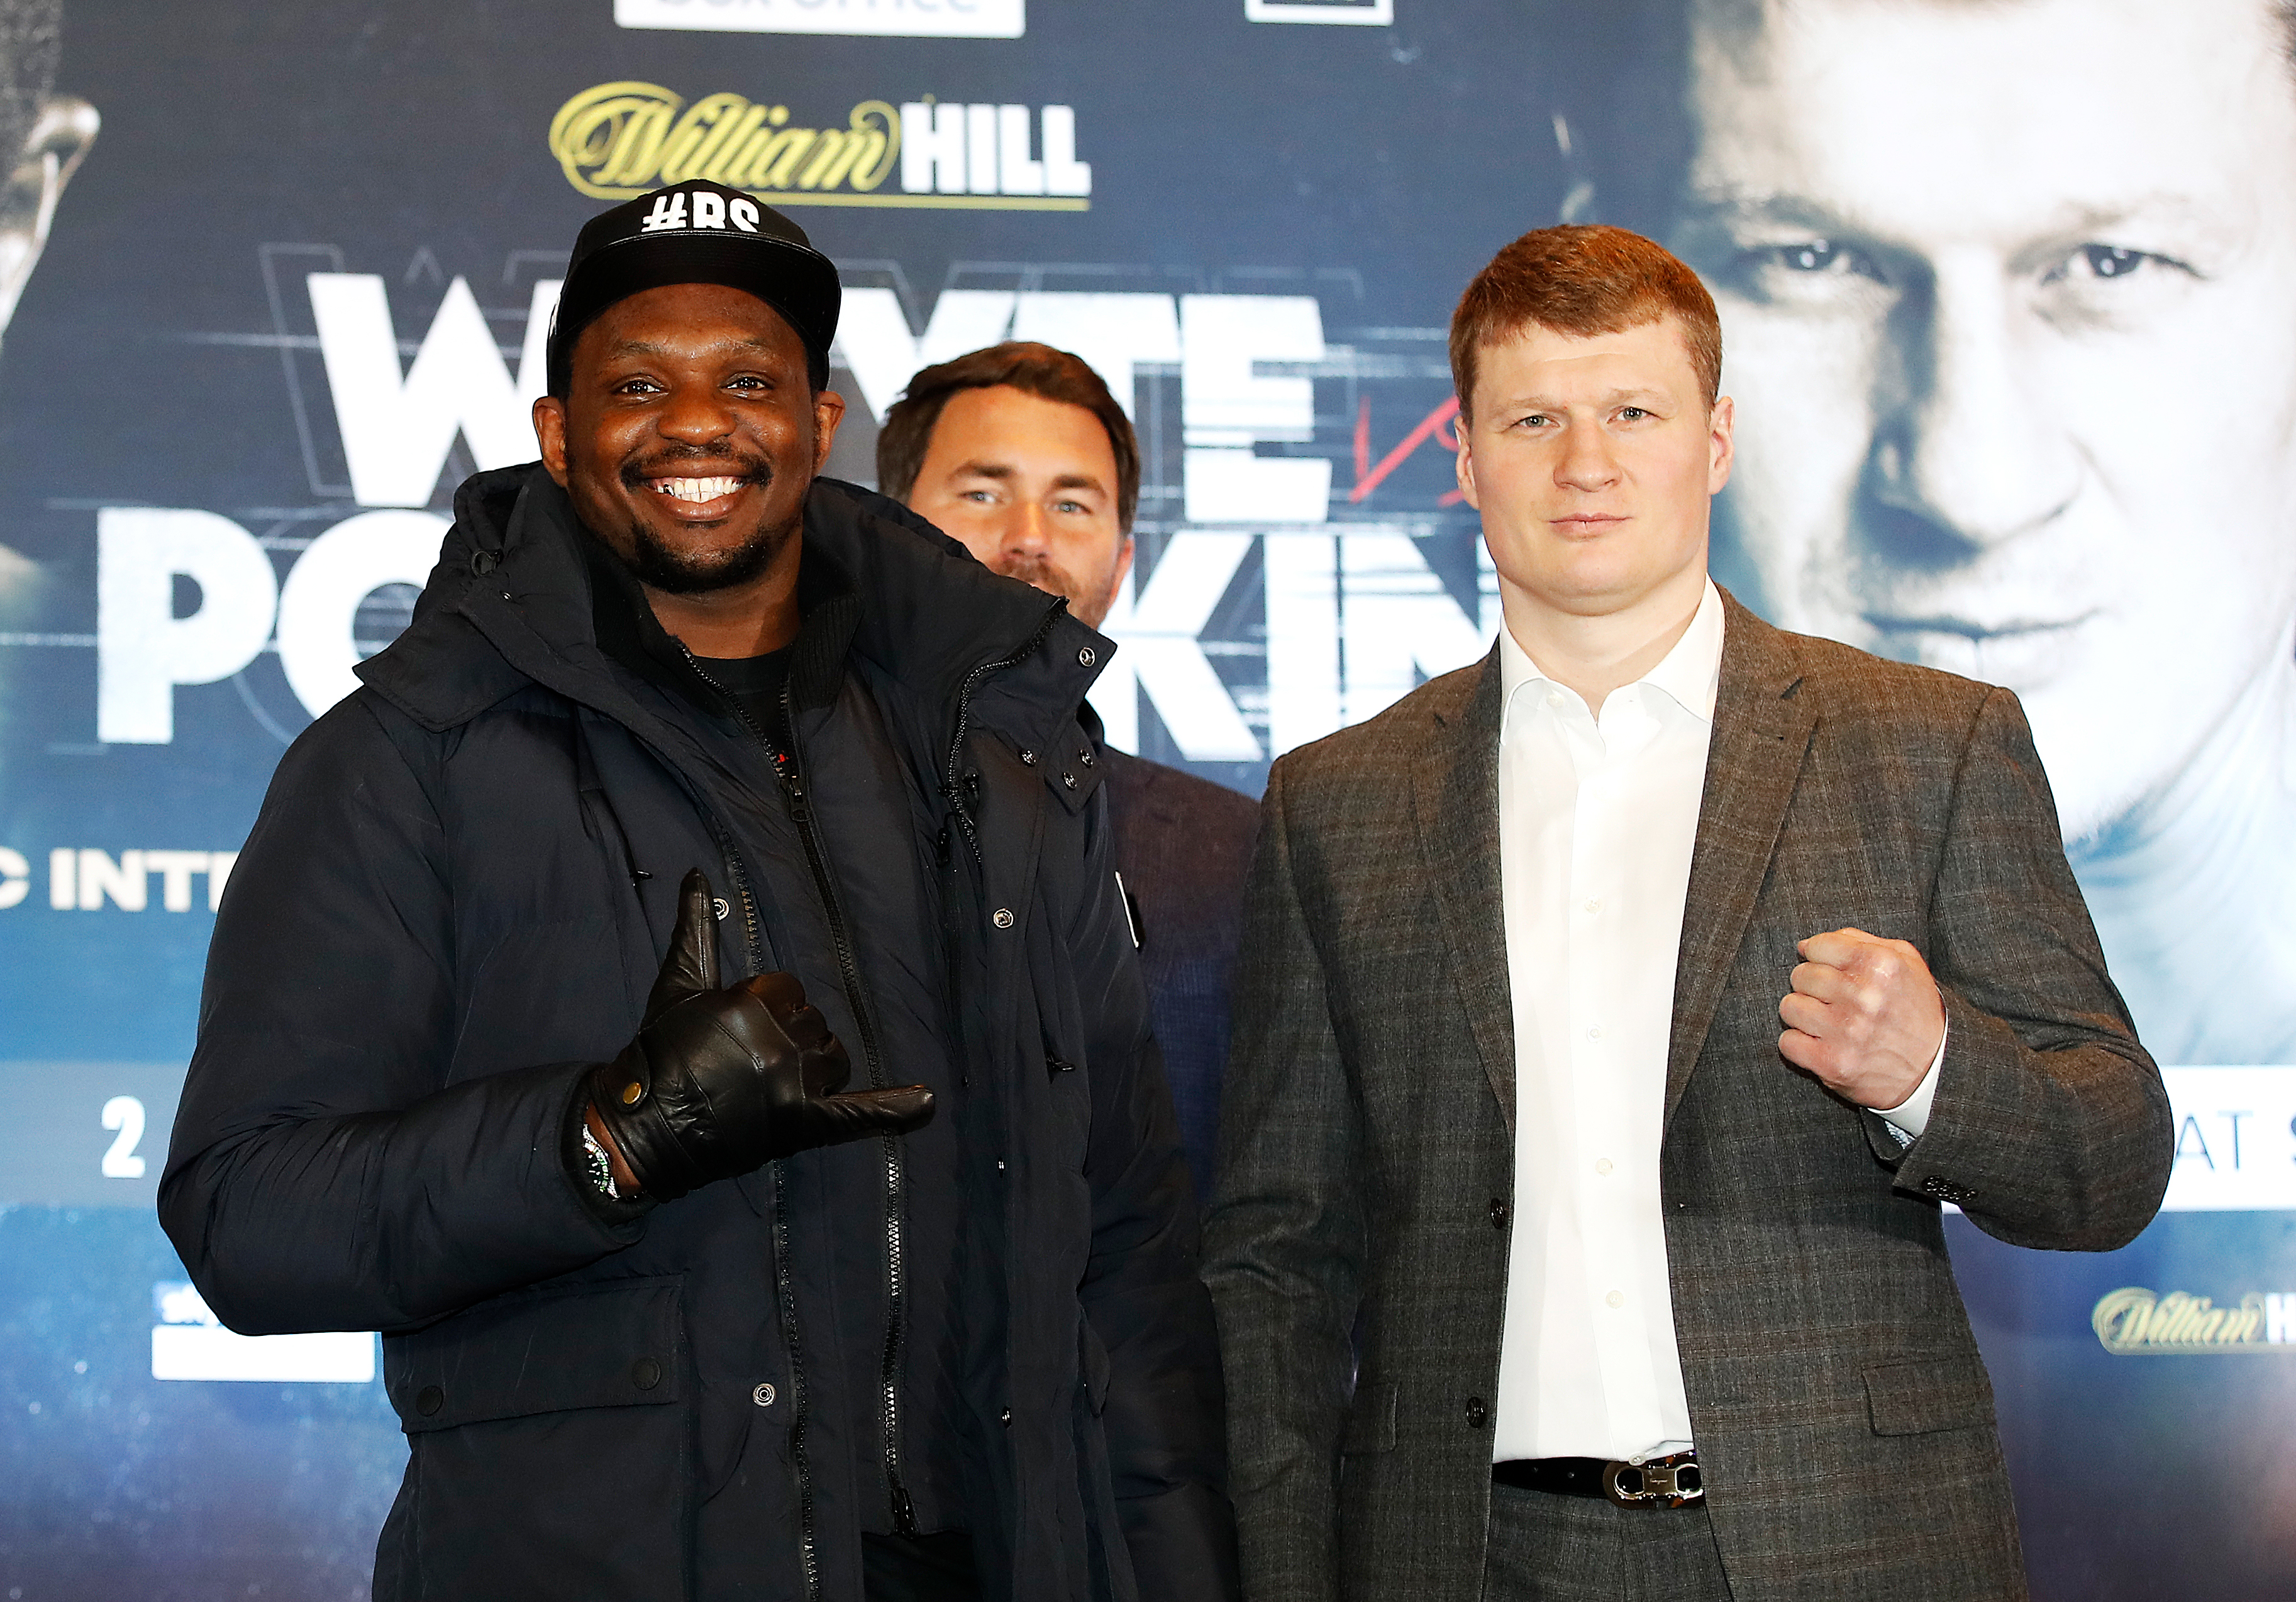 Dillian Whyte and Alexander Povetkin Press Conference - Mercure Manchester Piccadilly Hotel